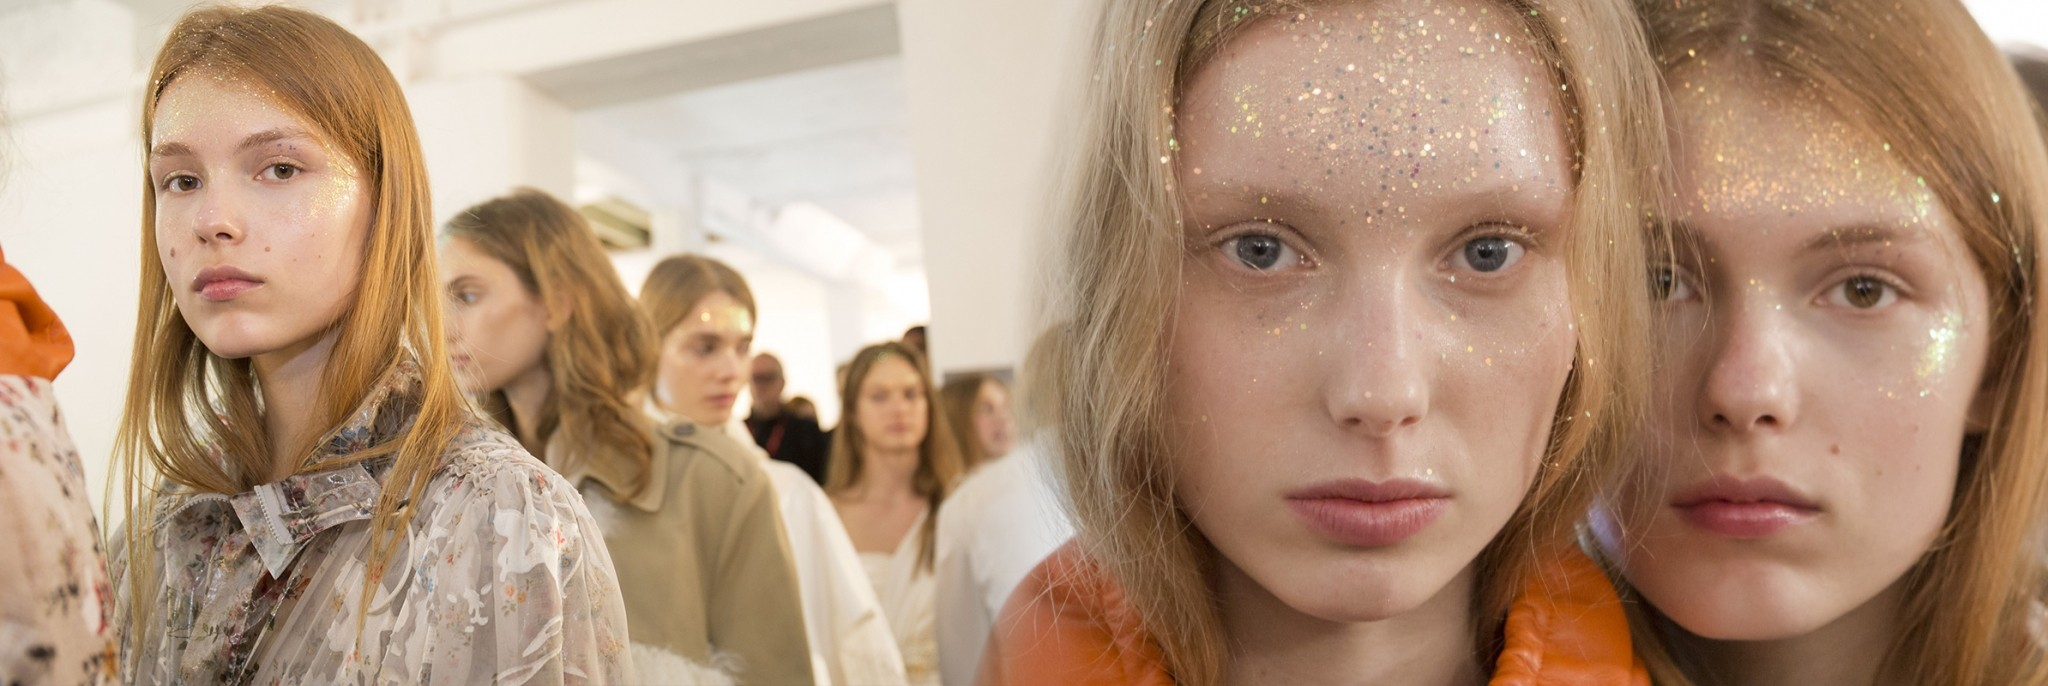 8 LFW Beauty Looks Inspiring Us to Break (All) the Rules